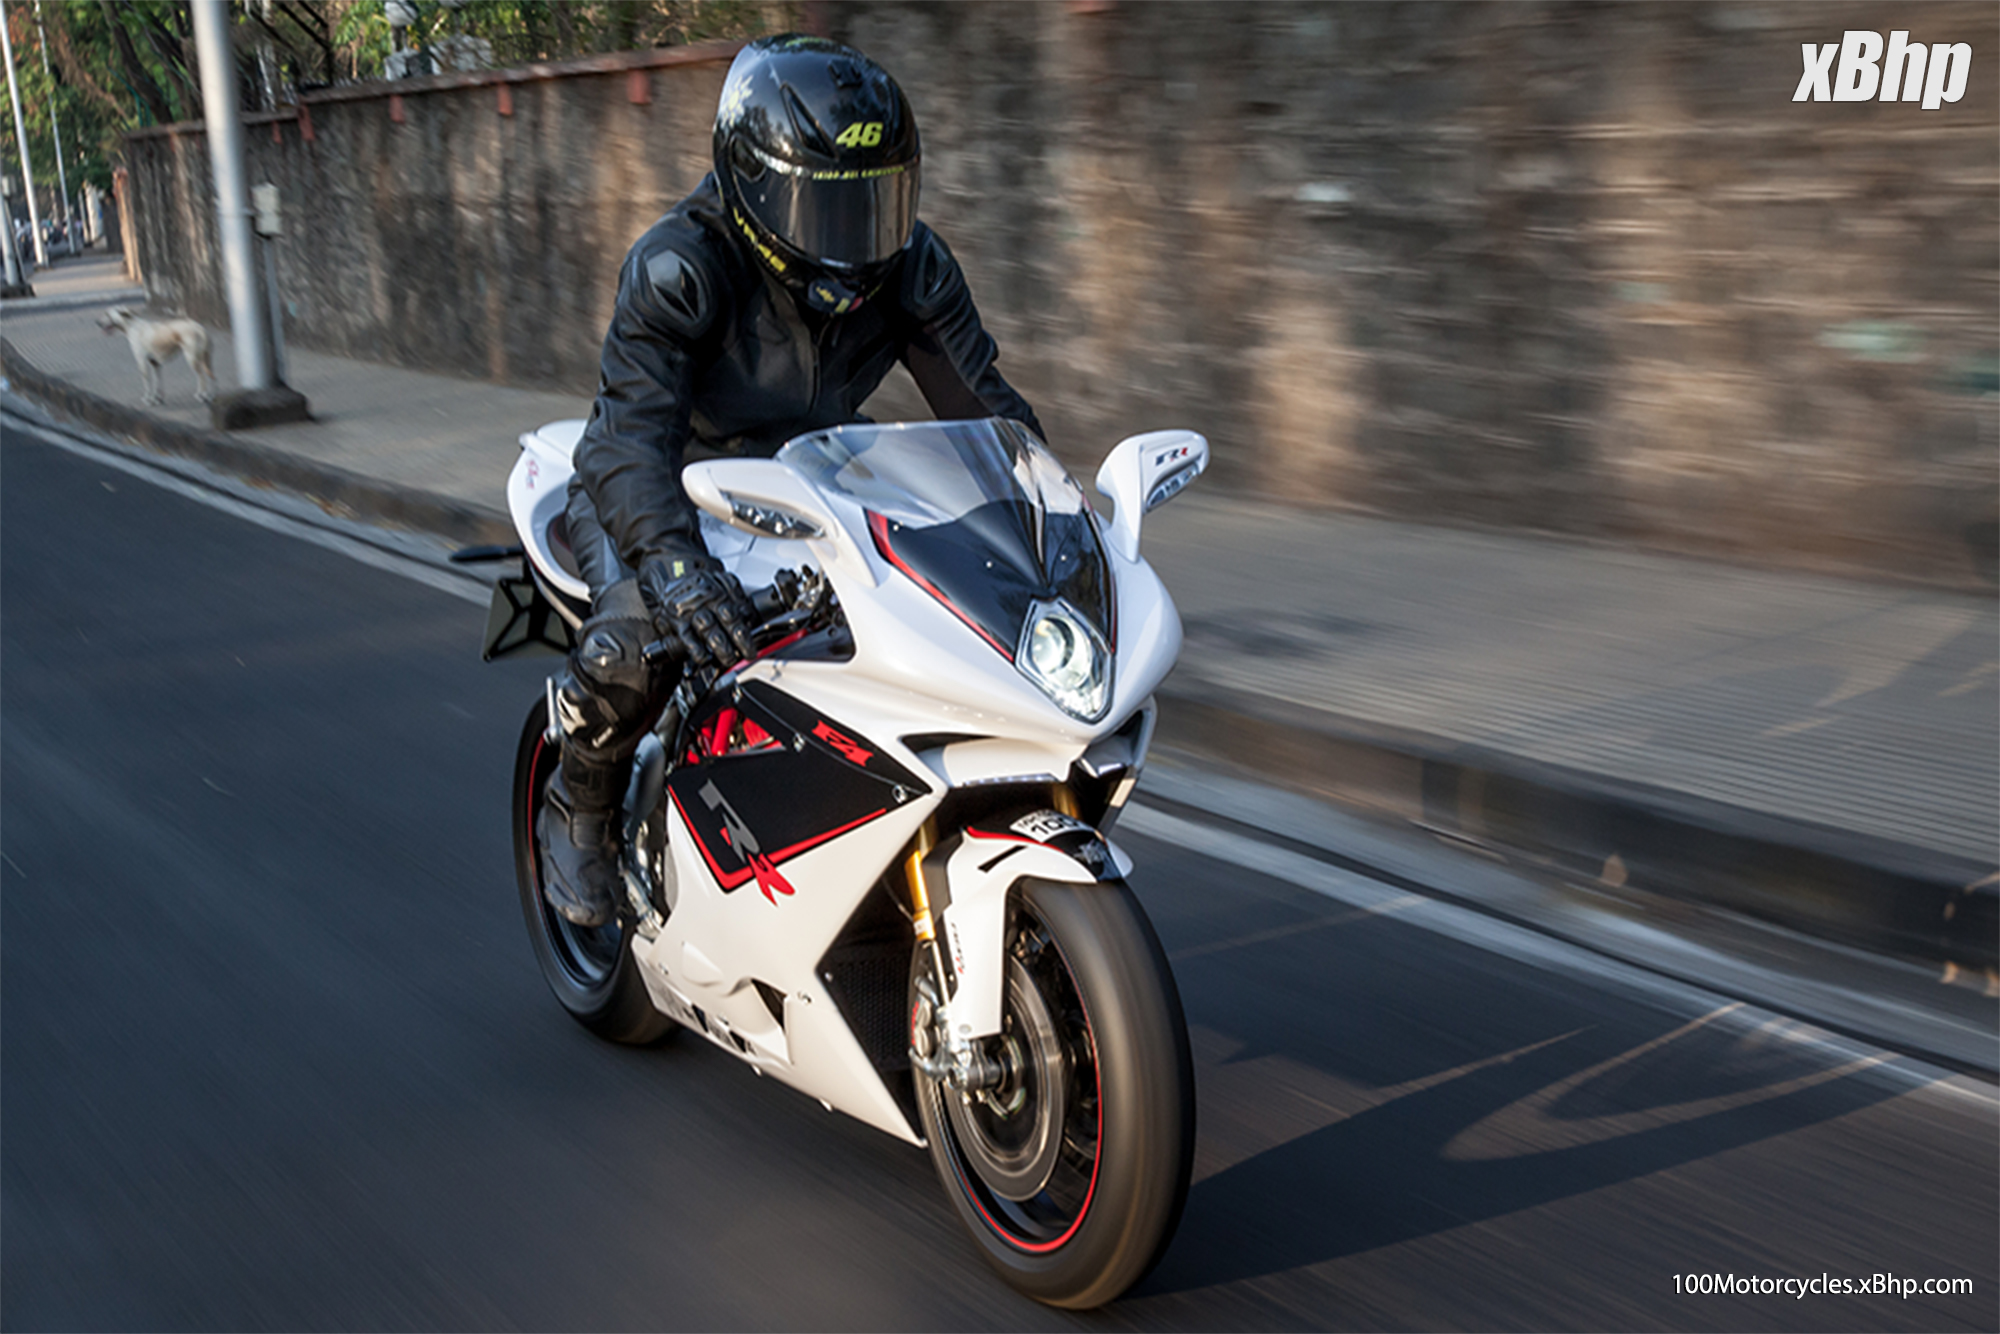 Bike #96: MV Agusta F4 RR - Art on Wheels! - 'OLX and xBhp Present ...